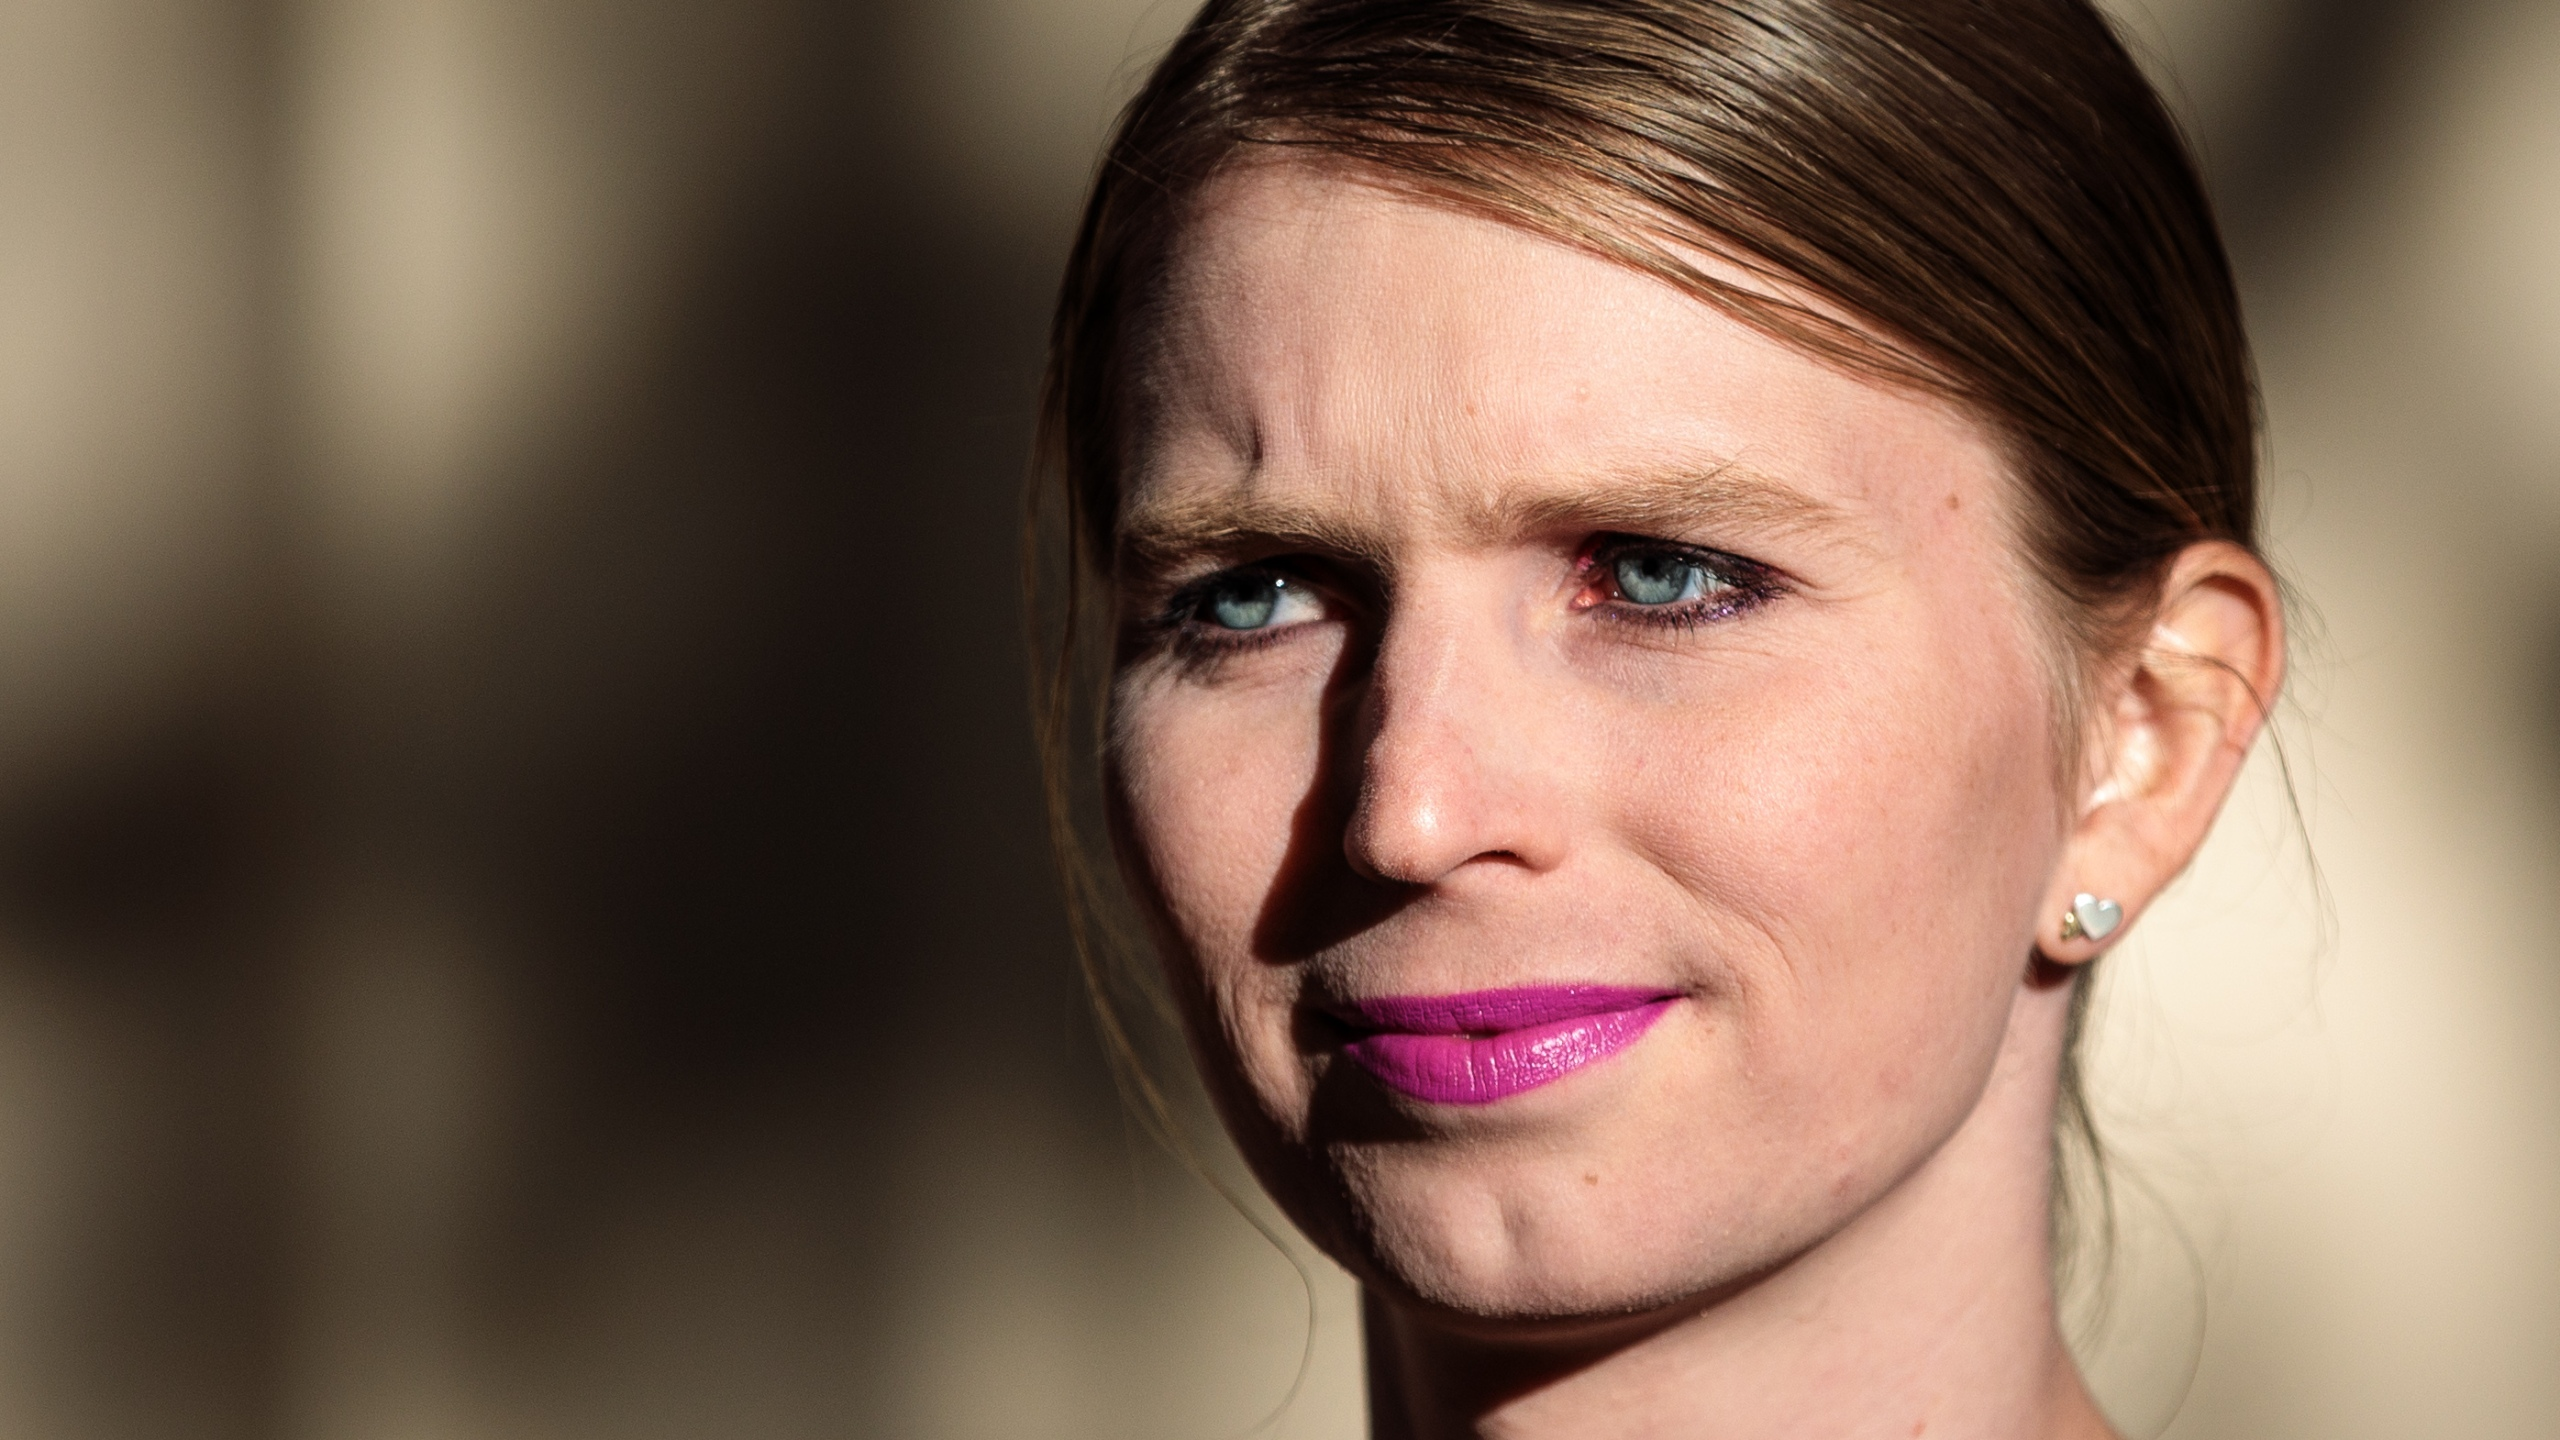 Former American soldier and whistleblower Chelsea Manning appears outside the Institute Of Contemporary Arts ahead of a Q&A event on Oct. 1, 2018 in London, England. (Credit: Jack Taylor/Getty Images)